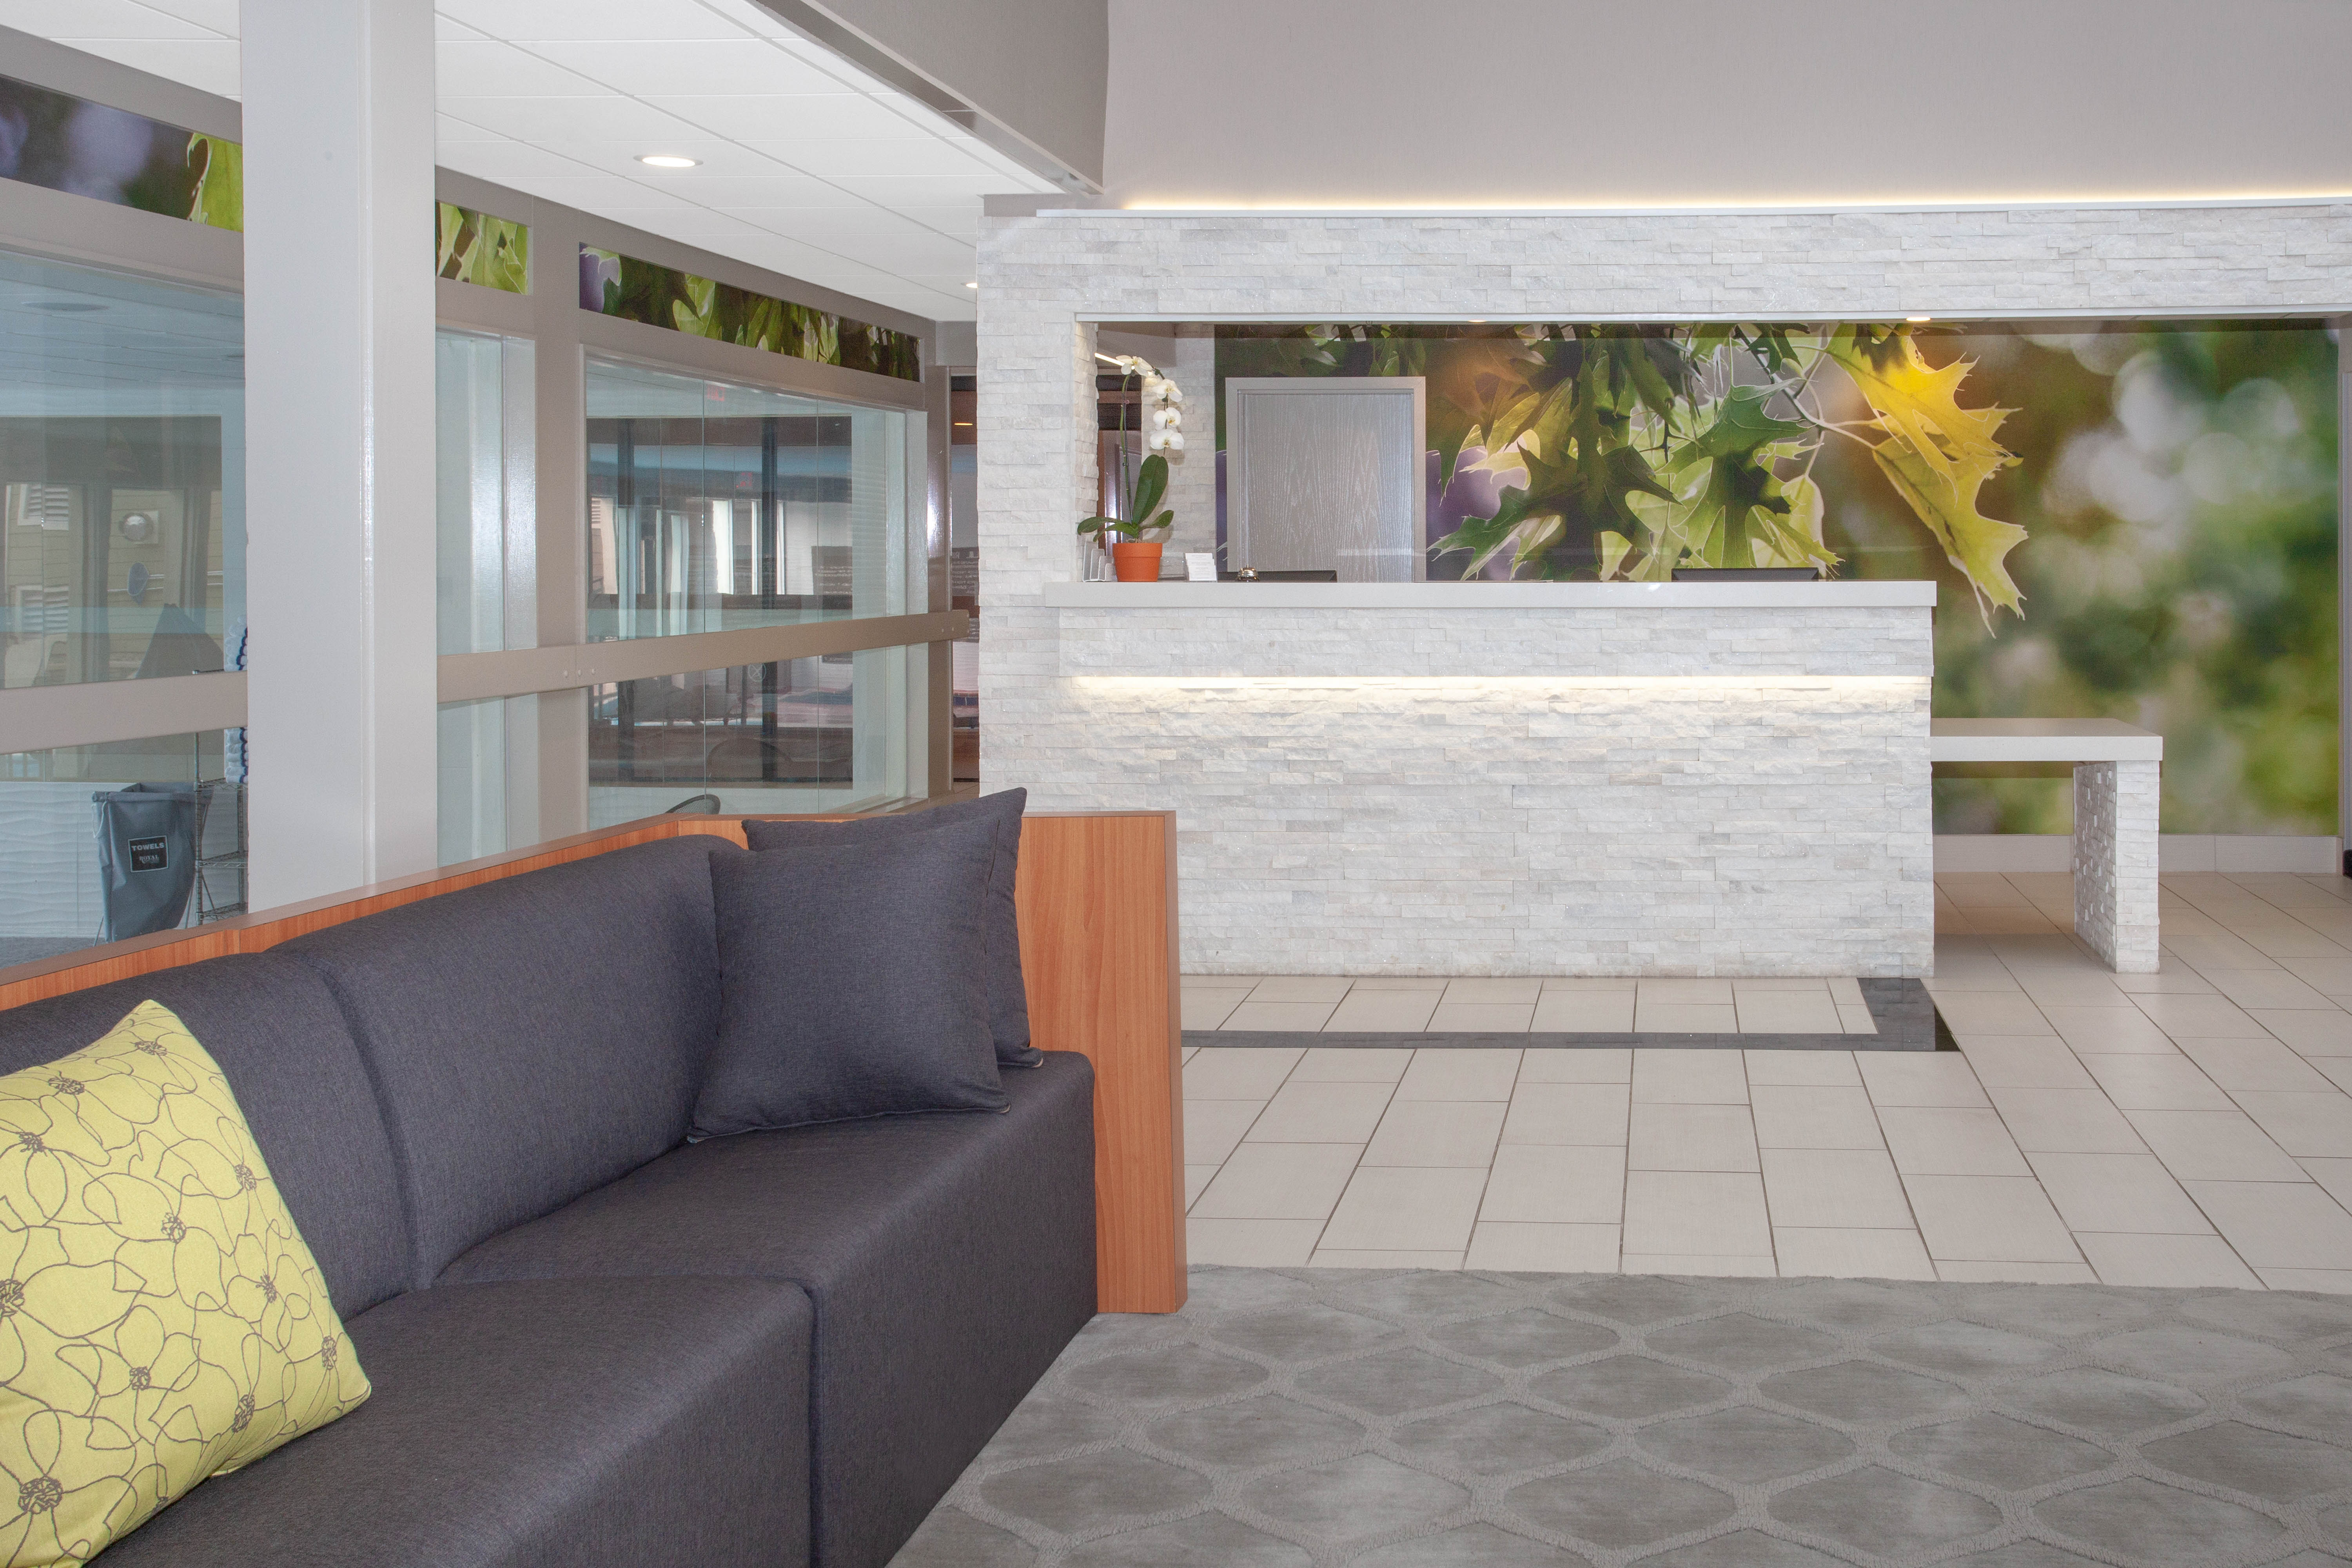 https://memorialcoliseum.com/images/Images/Where_to_Stay_Images/Wyndham_Garden/Lobby.jpg